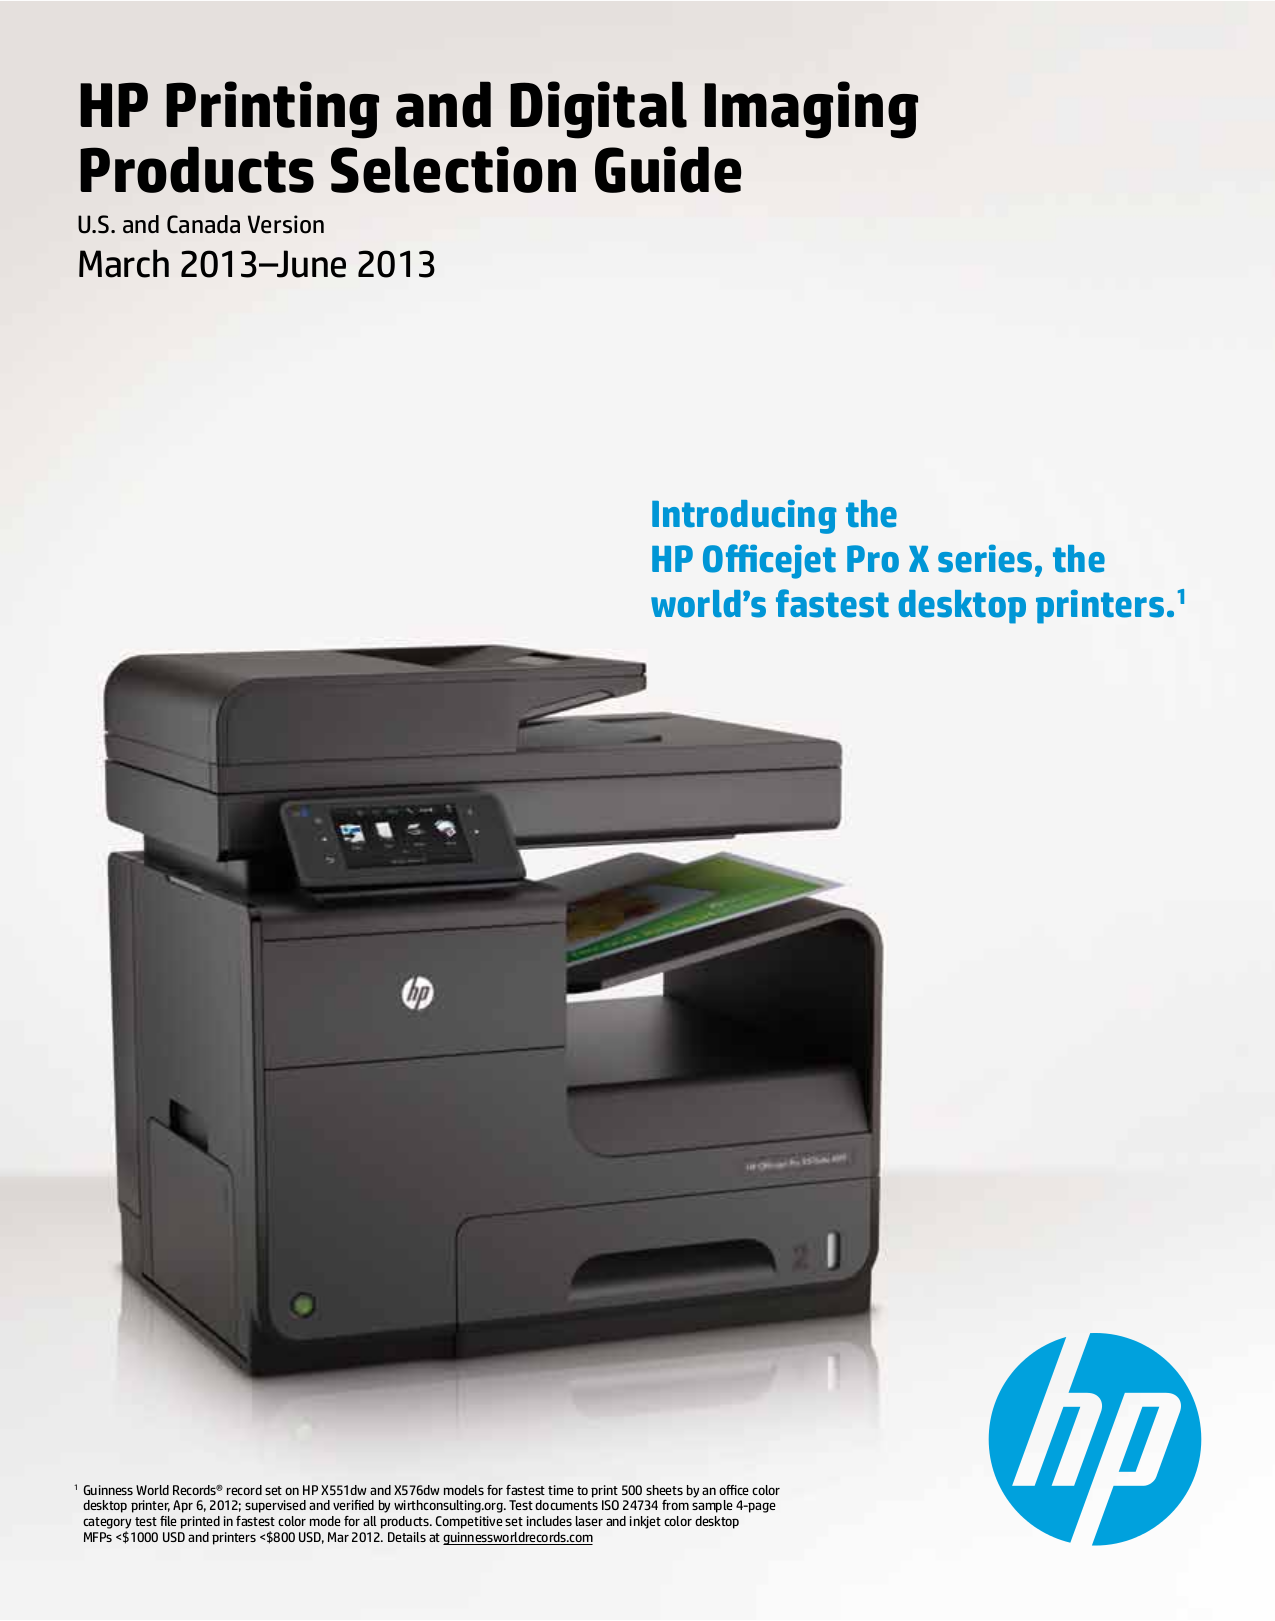 hp j6480 owners manual how to and user guide instructions u2022 rh taxibermuda co hp j6480 software download hp j6480 manual